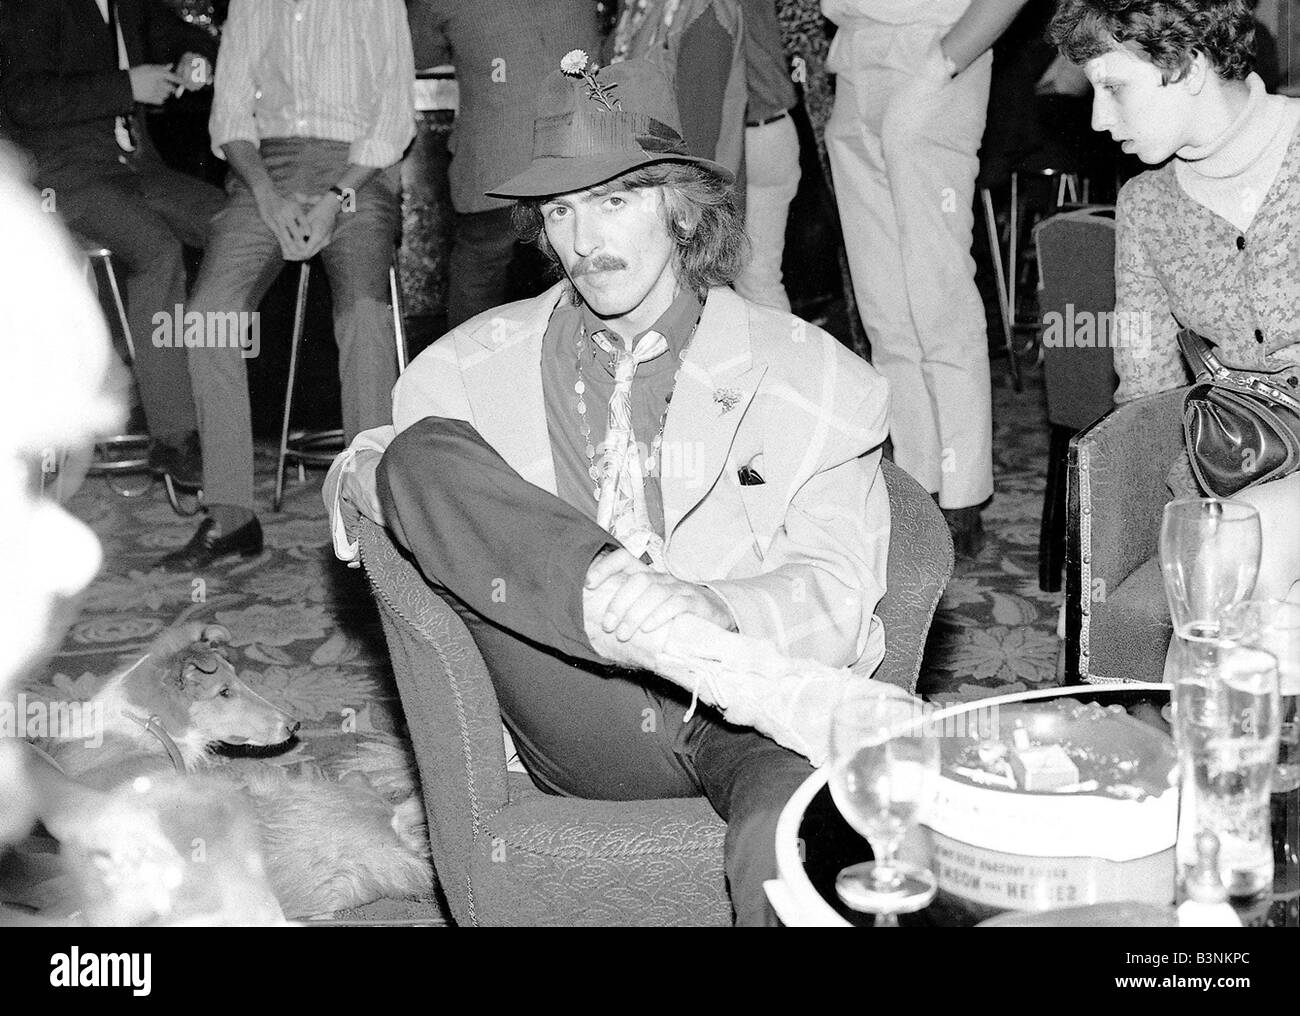 9ee4d1b5388f Beatles files 1967 George Harrison in Newquay after filming Magical mystery  tour film rests in bar September 1967